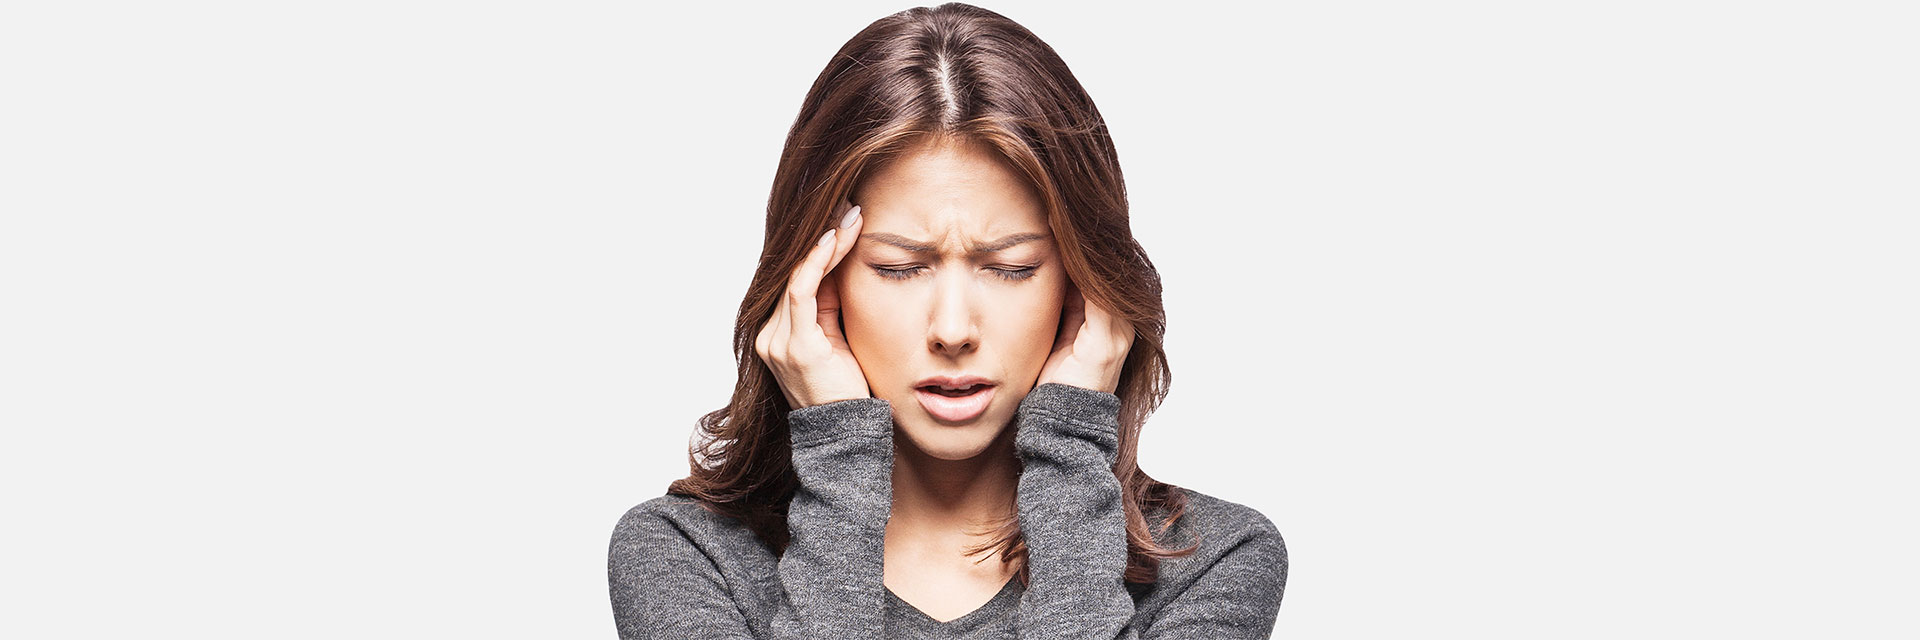 Do You Suffer From Frequent, Debilitating Migraines?